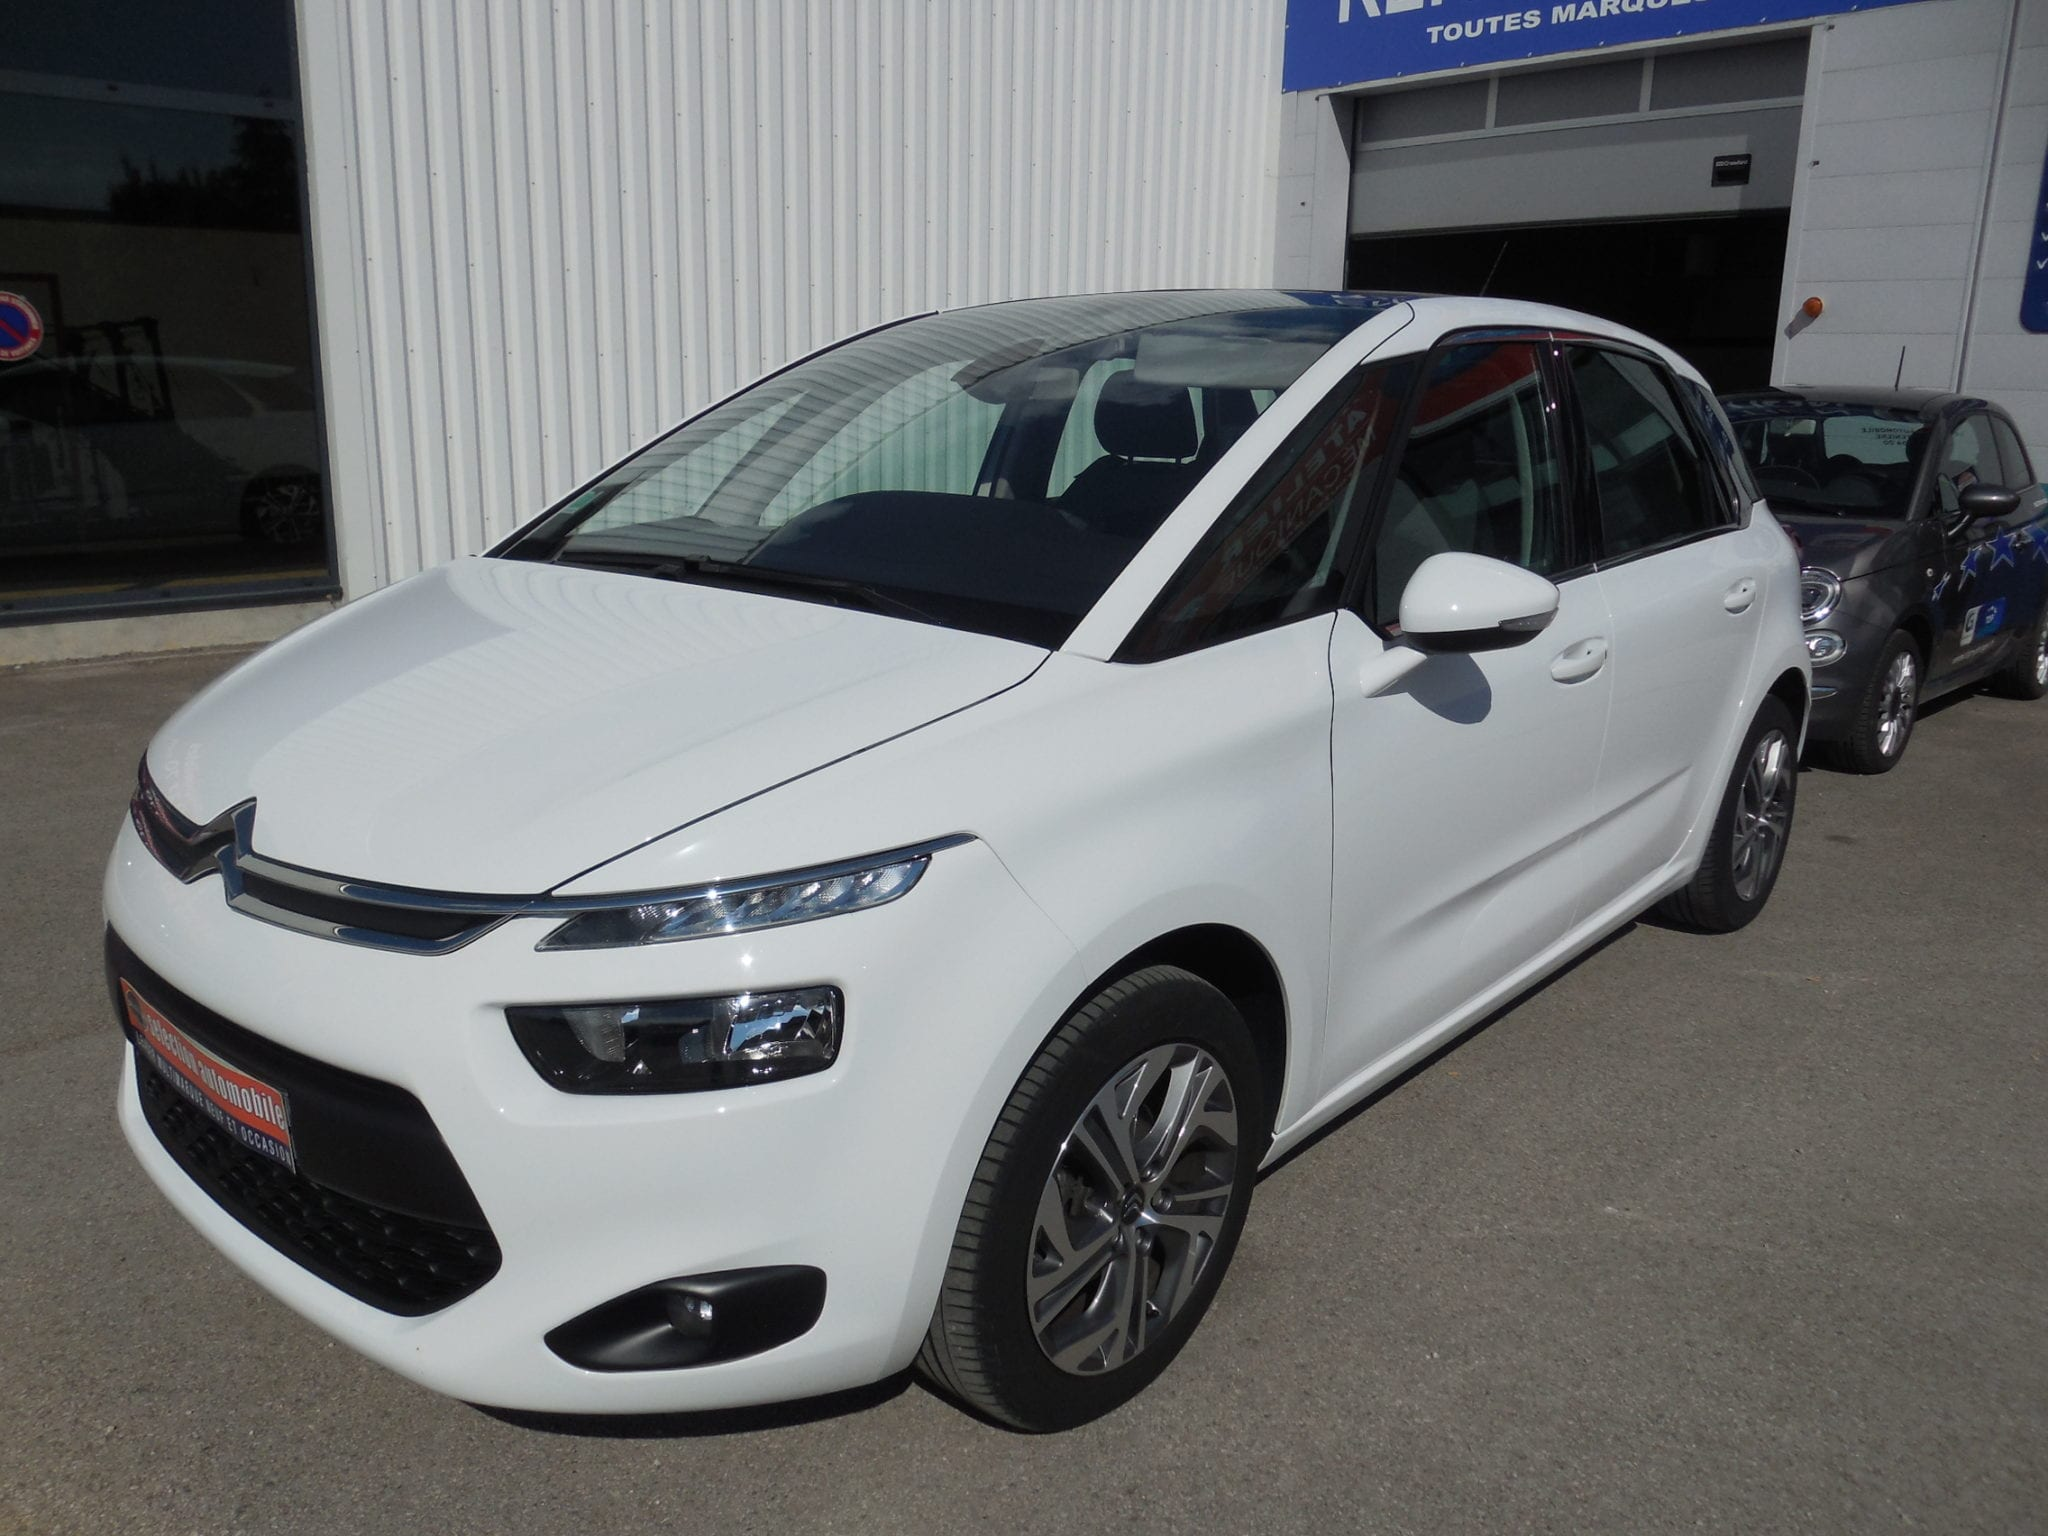 CITROEN C4 Picasso COLLECTION eHDI+OPTIONS 30446 KMS  - Image 1